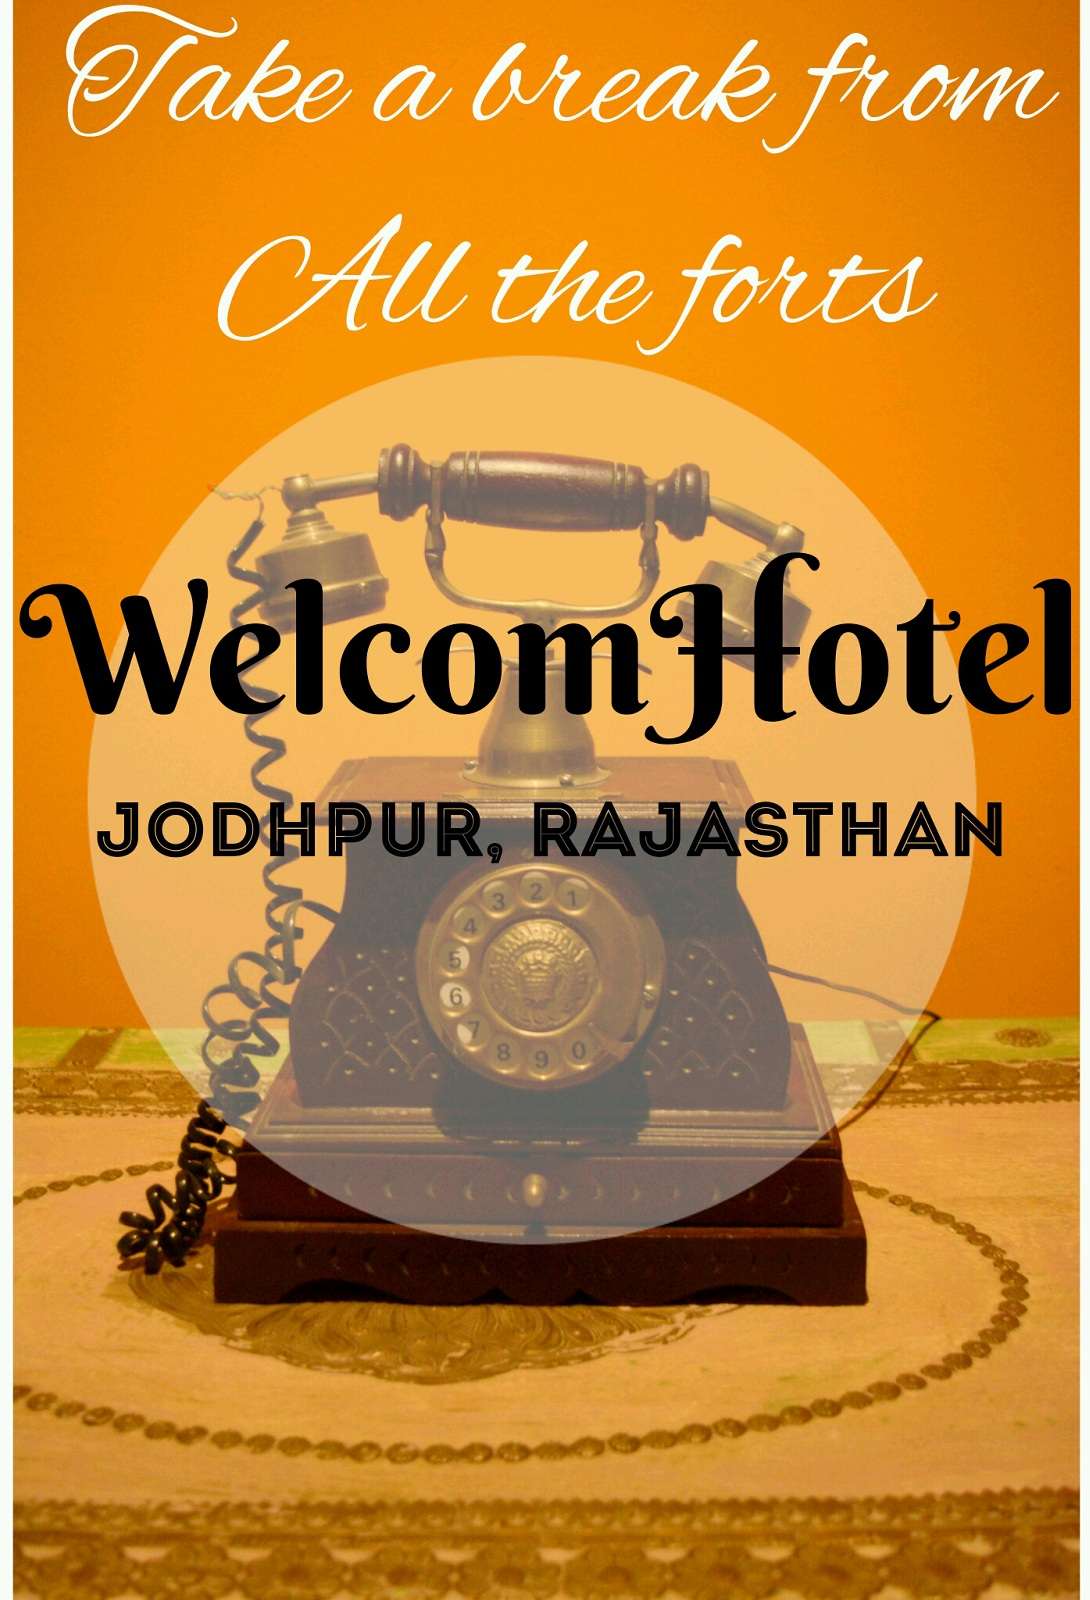 Take a break from all the forts: WelcomHotel Jodhpur